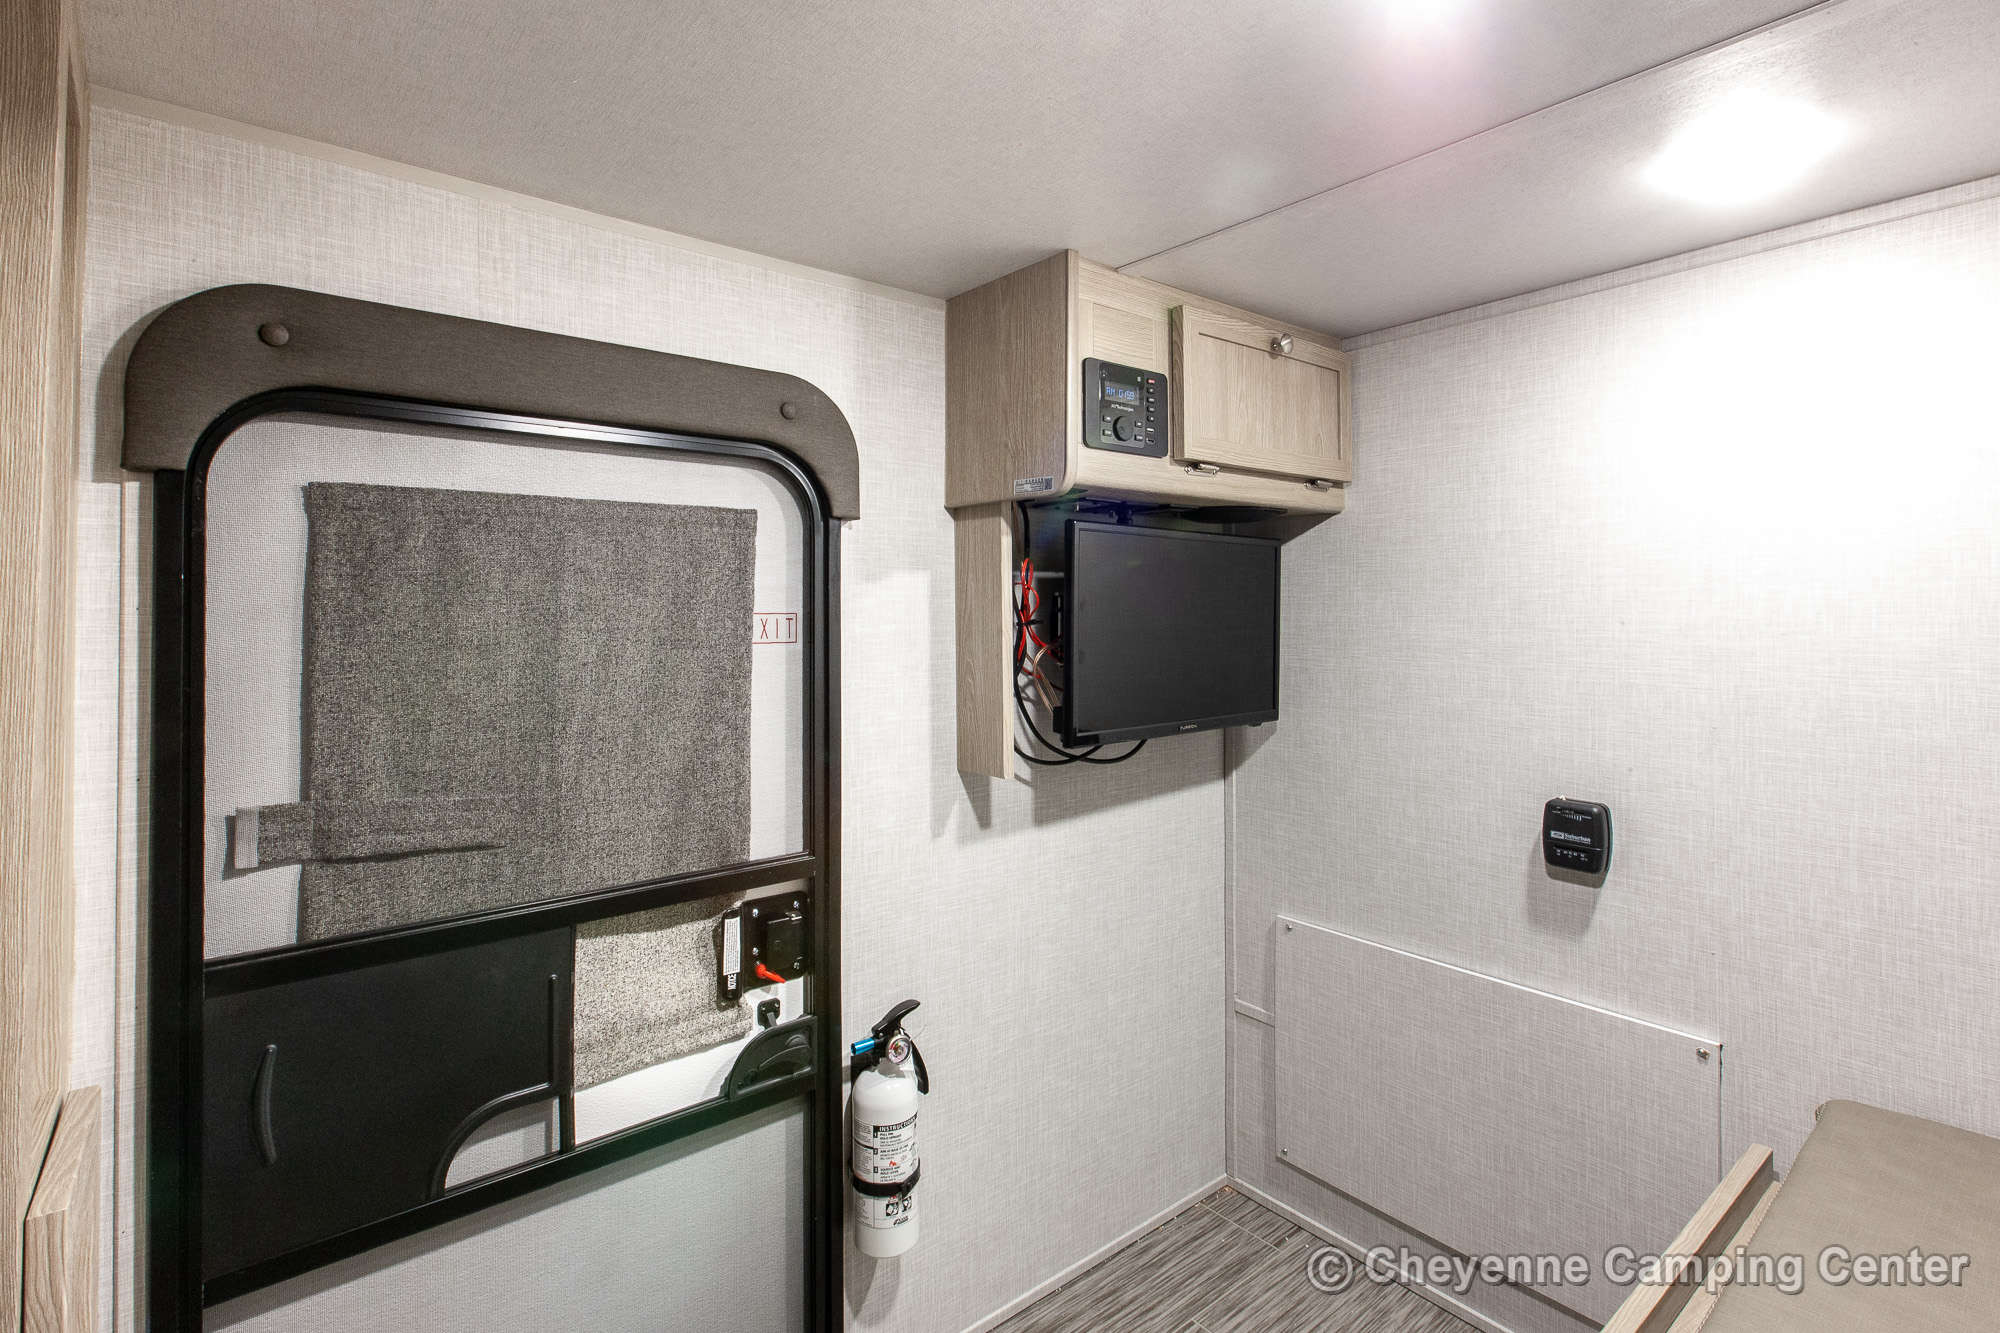 2021 Forest River Flagstaff E-Pro E12SRK Travel Trailer Interior Image